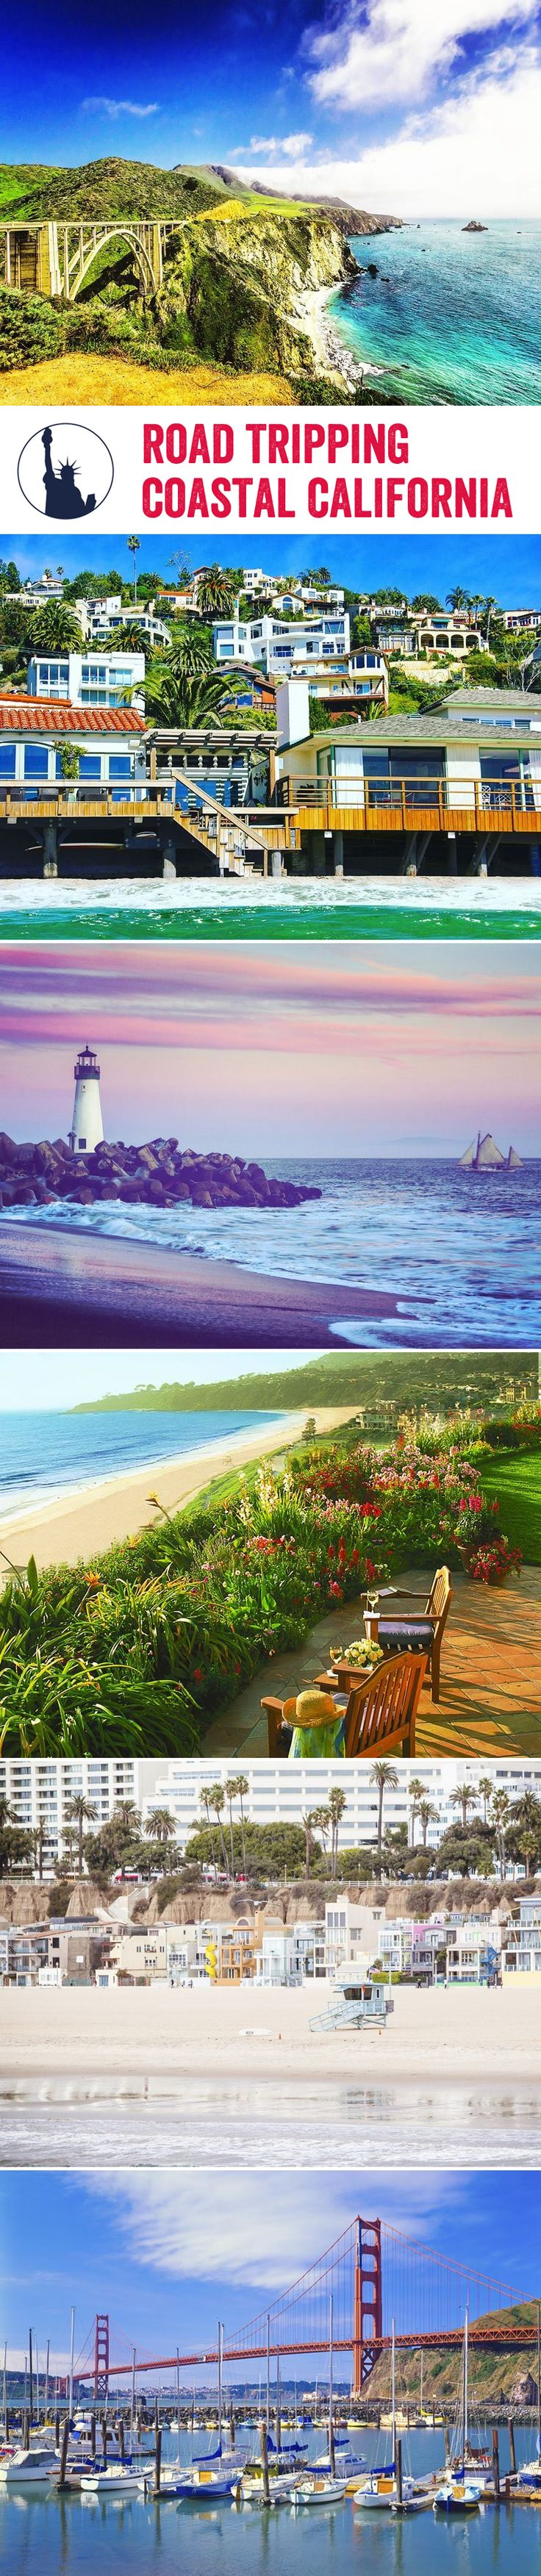 Wind down the windows and enjoy a laidback road trip down the Californian coast, stopping by our favourite locations along the way